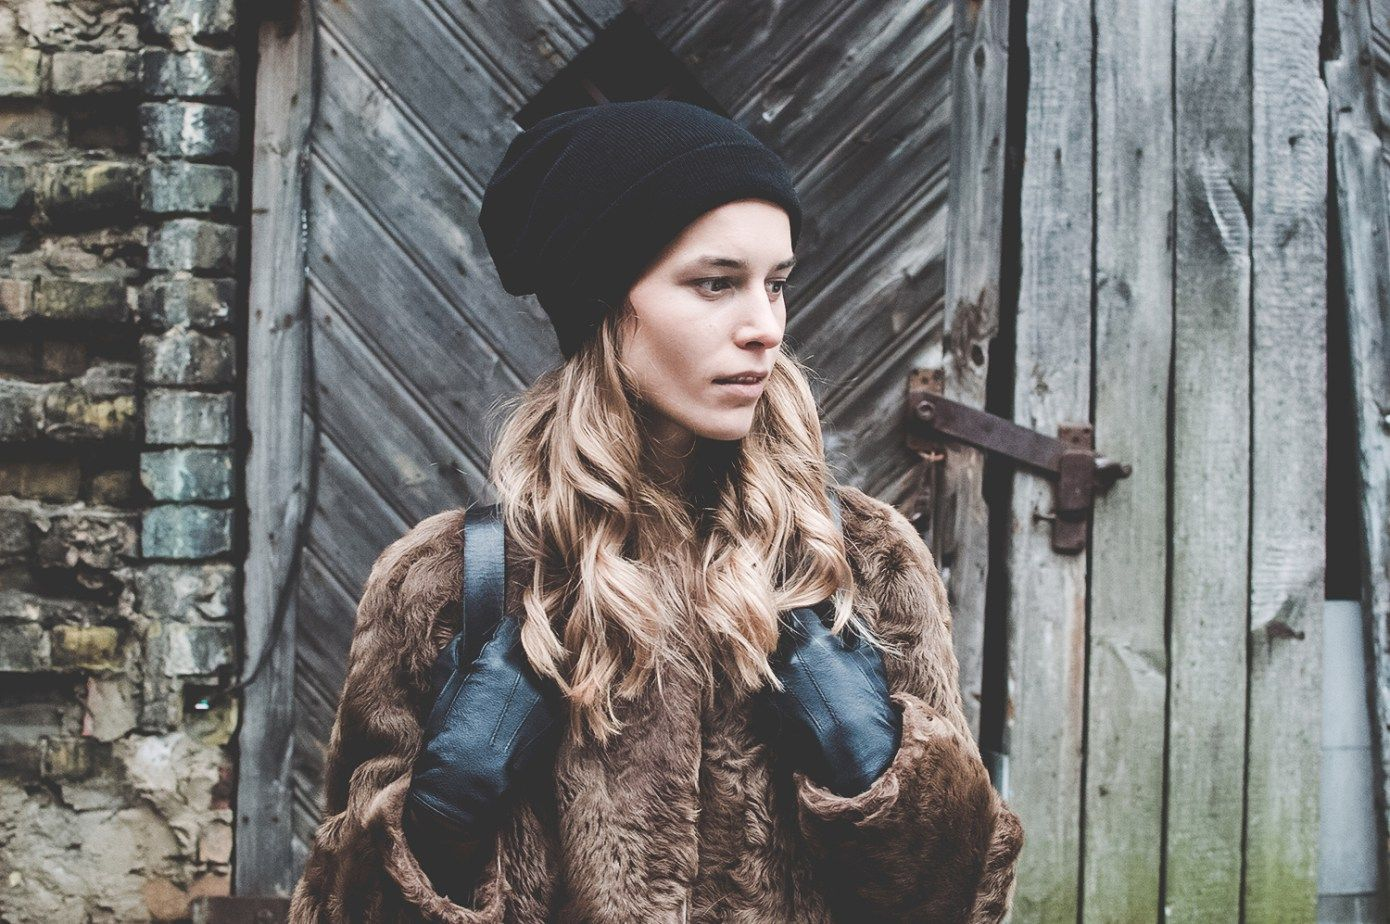 winter #ootd post today on www.donttellanyone.net/blog! #fashion #outlook #style #outfit #fur #coat #winter